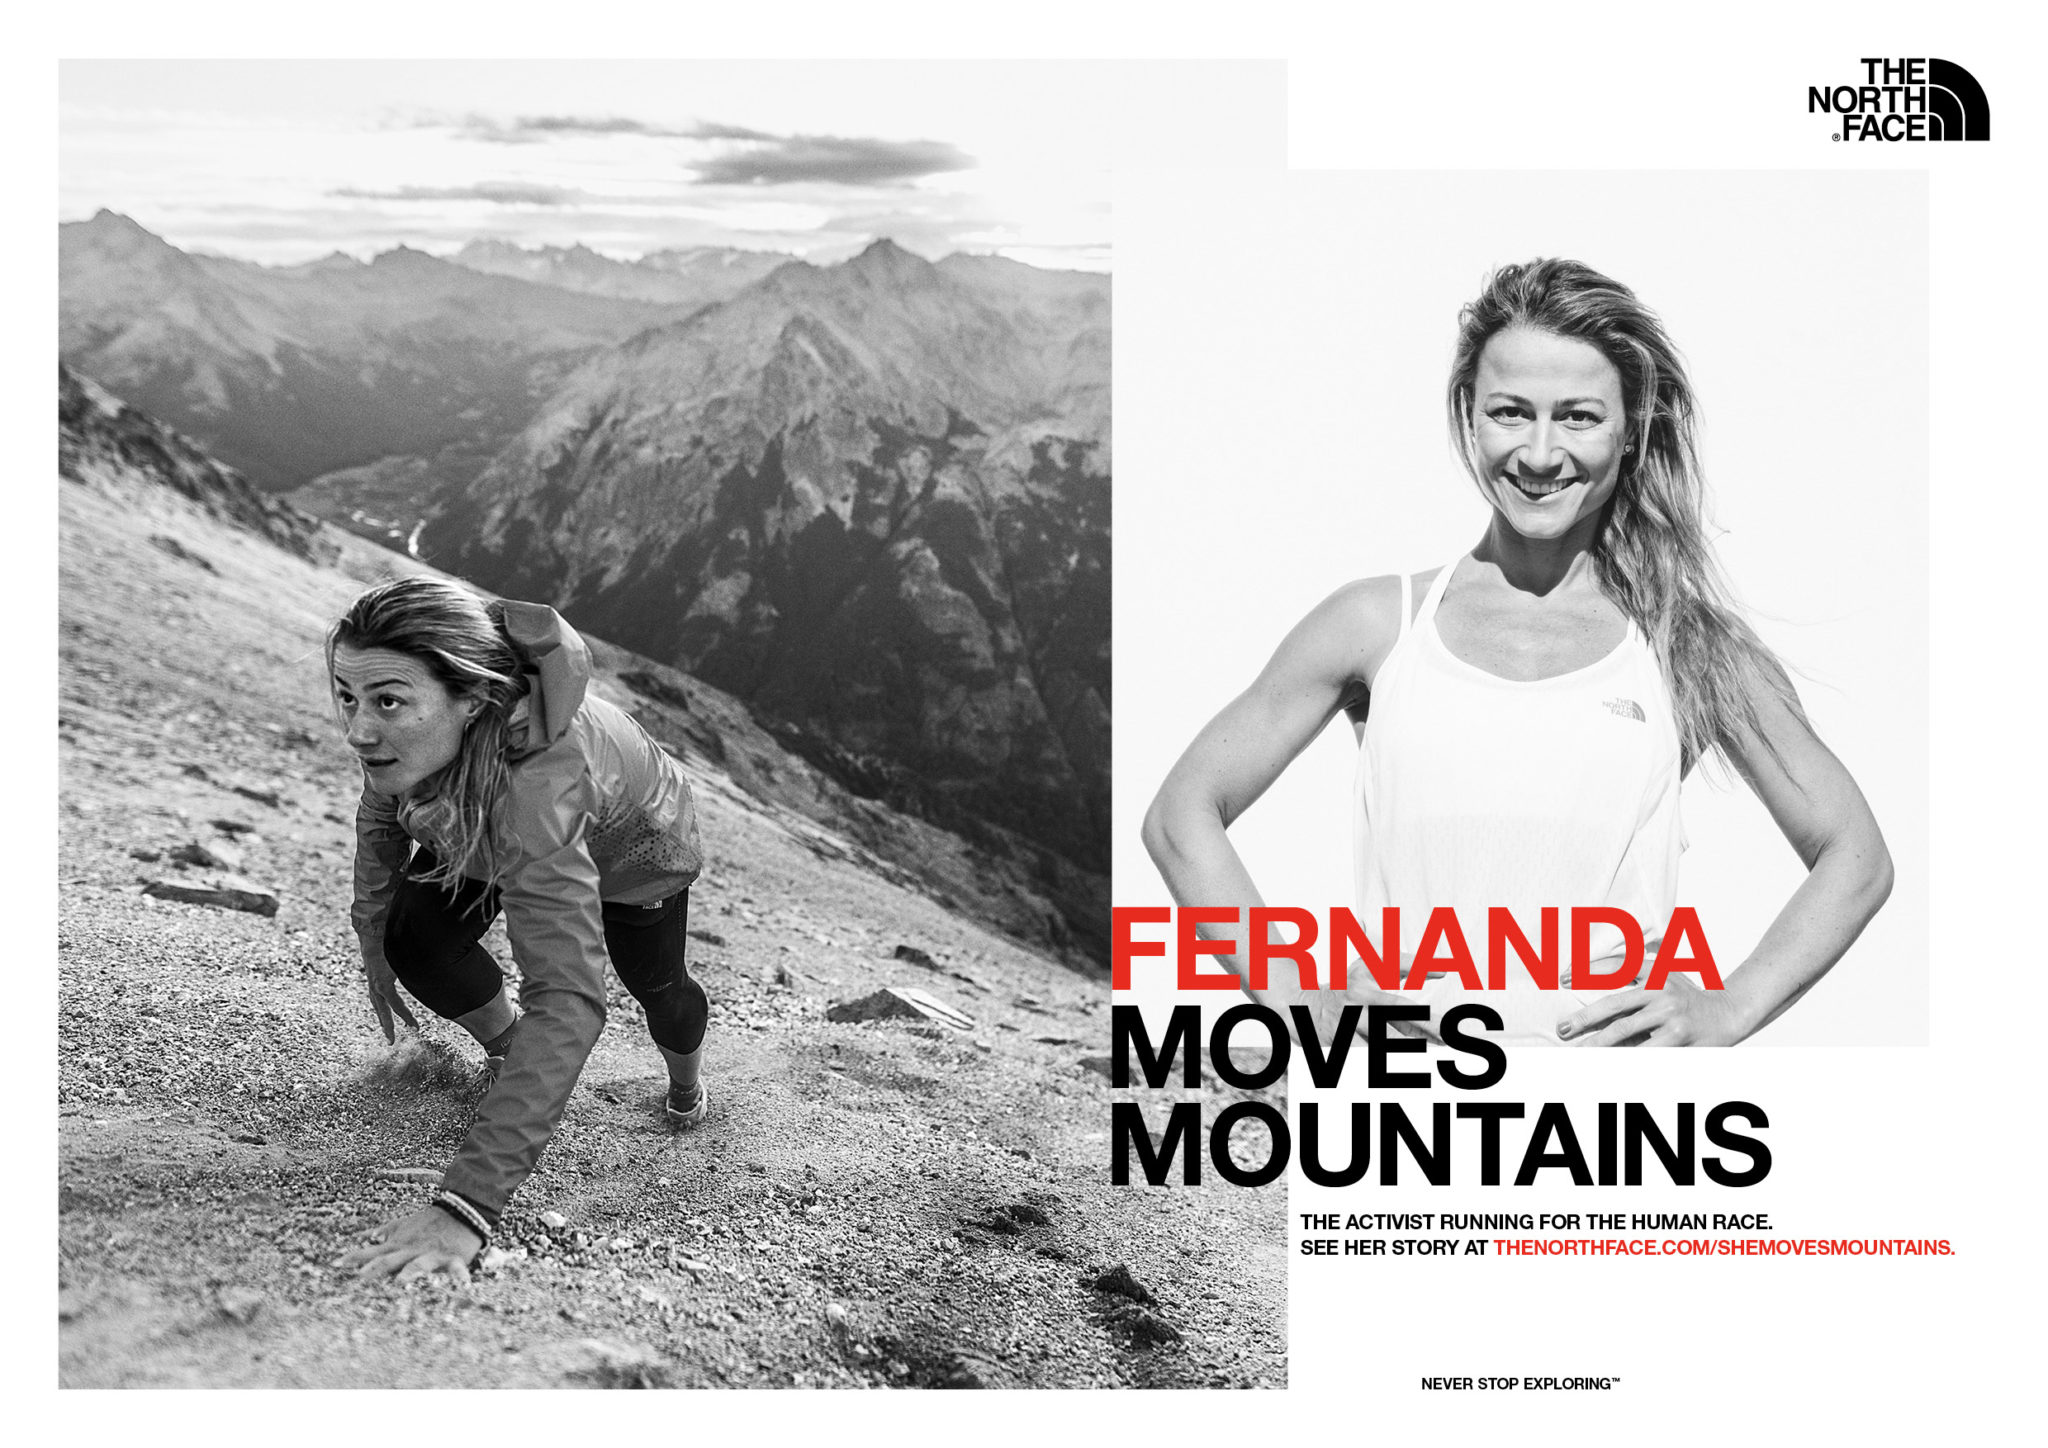 campagne-media-femmes-montagne-vetements-sports-accessoires-equipement-outdoor-alpinisme-vertical-trail-running-grimpe-escalade-exploration-exploratrice-aventuriere-neverstopexploring